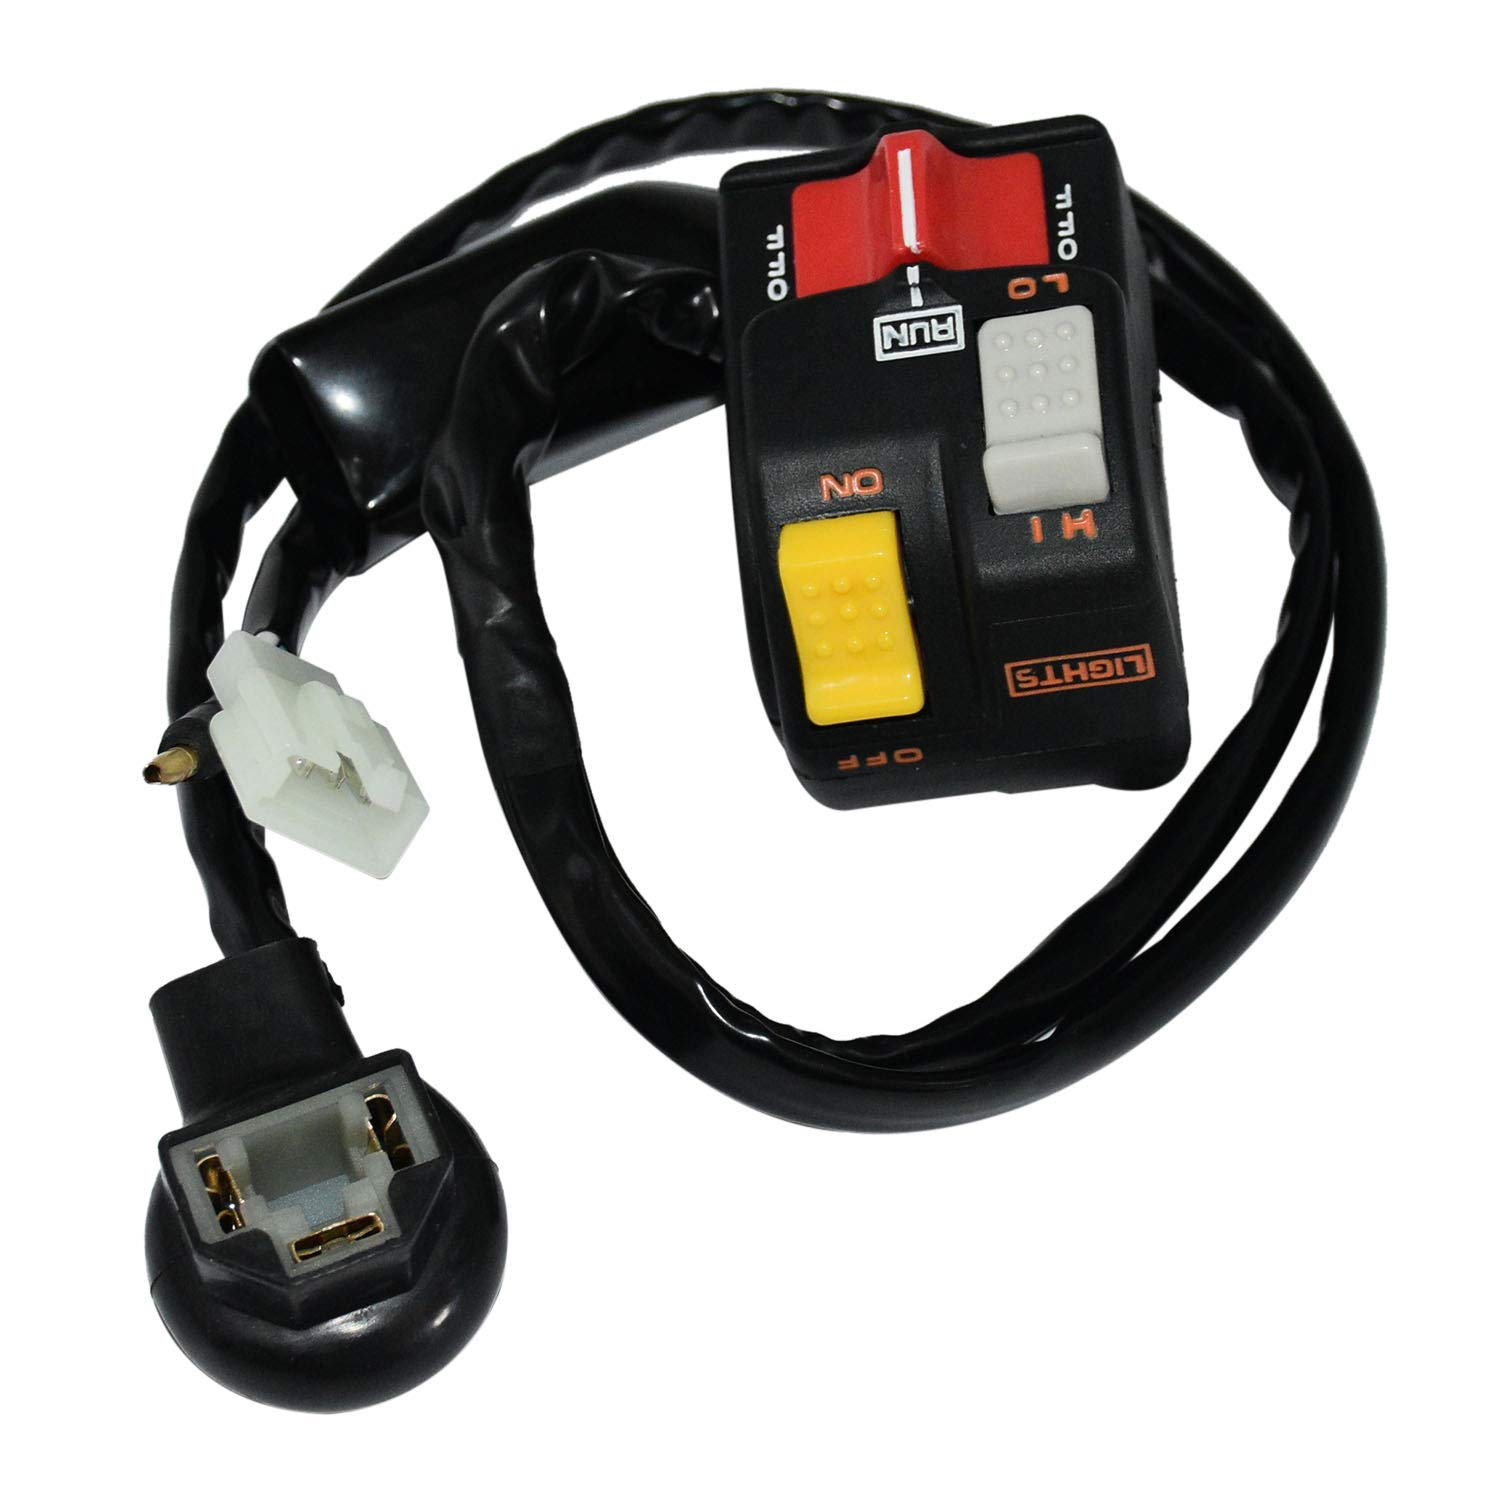 Carbman 35200-HB9-020 L H Switch Replacement TRX250R 35% OFF Elegant Honda for T